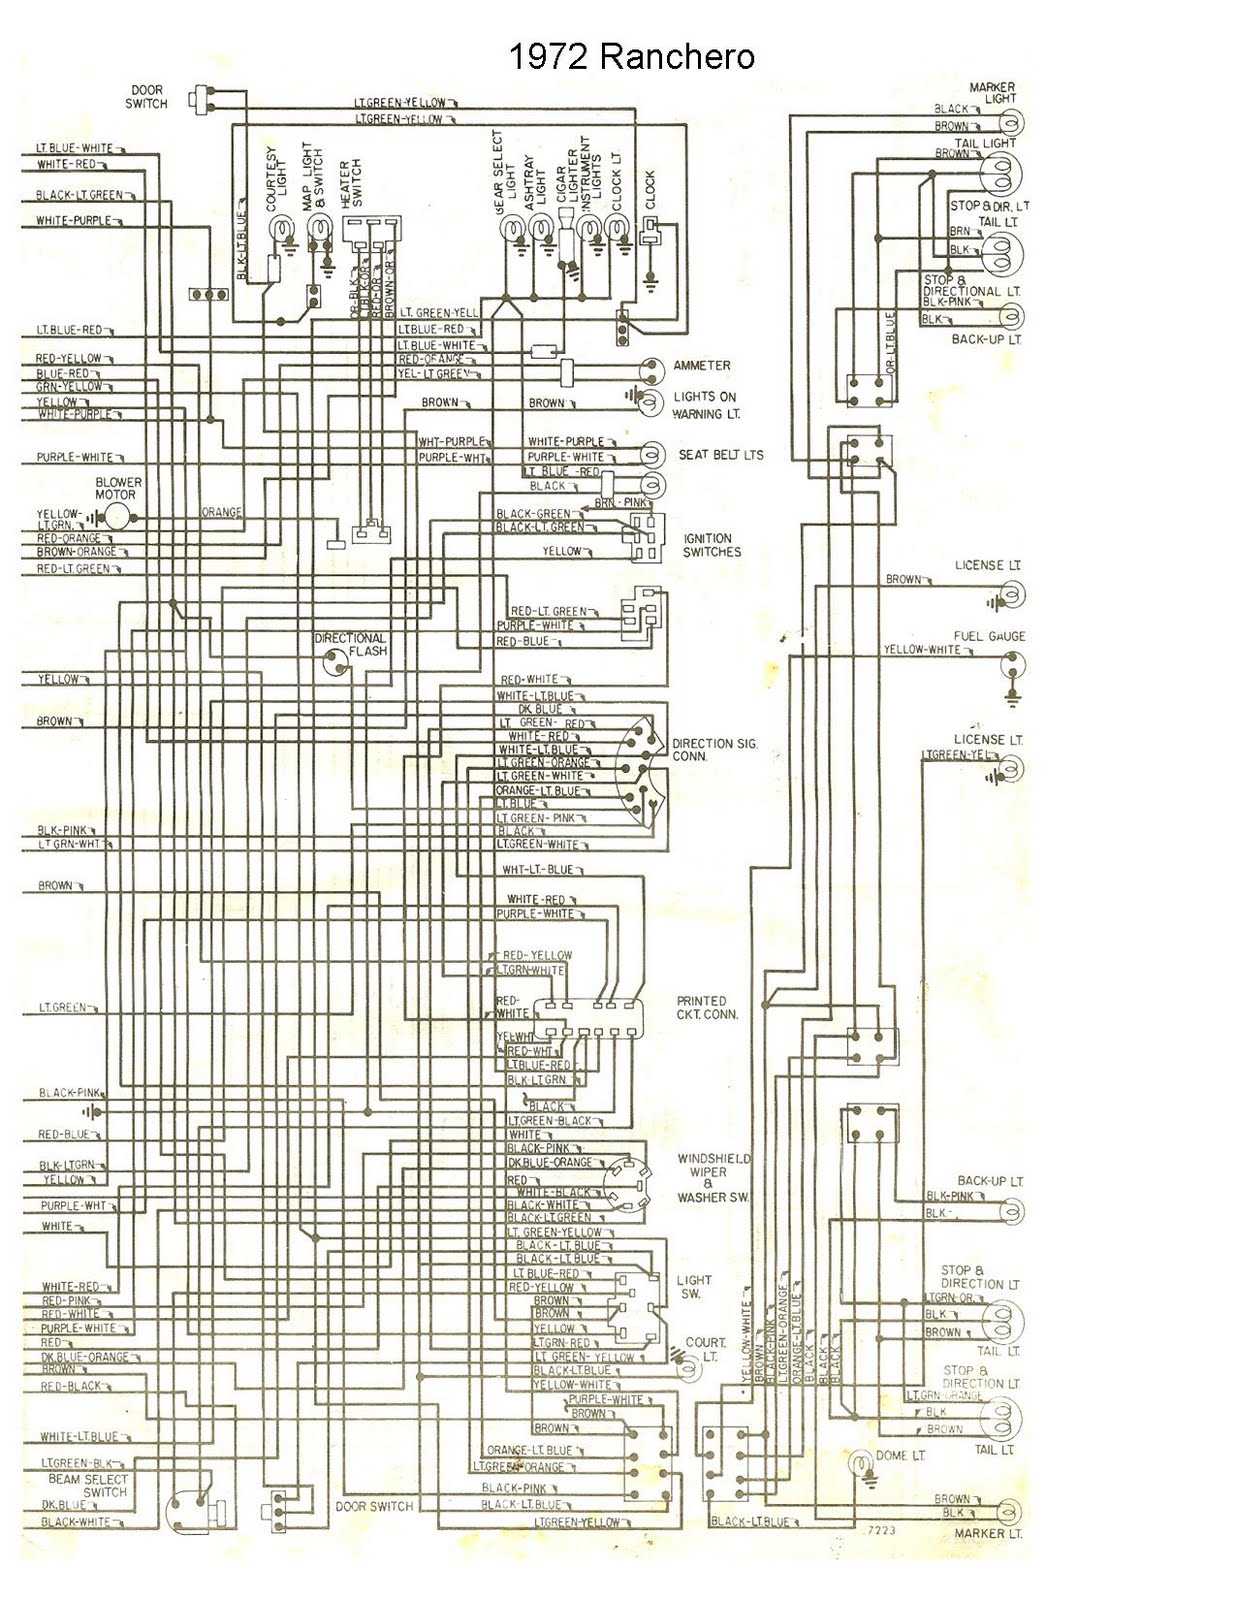 1960 Ford F100 Wiring Harness Free Download Get Image About Diagram